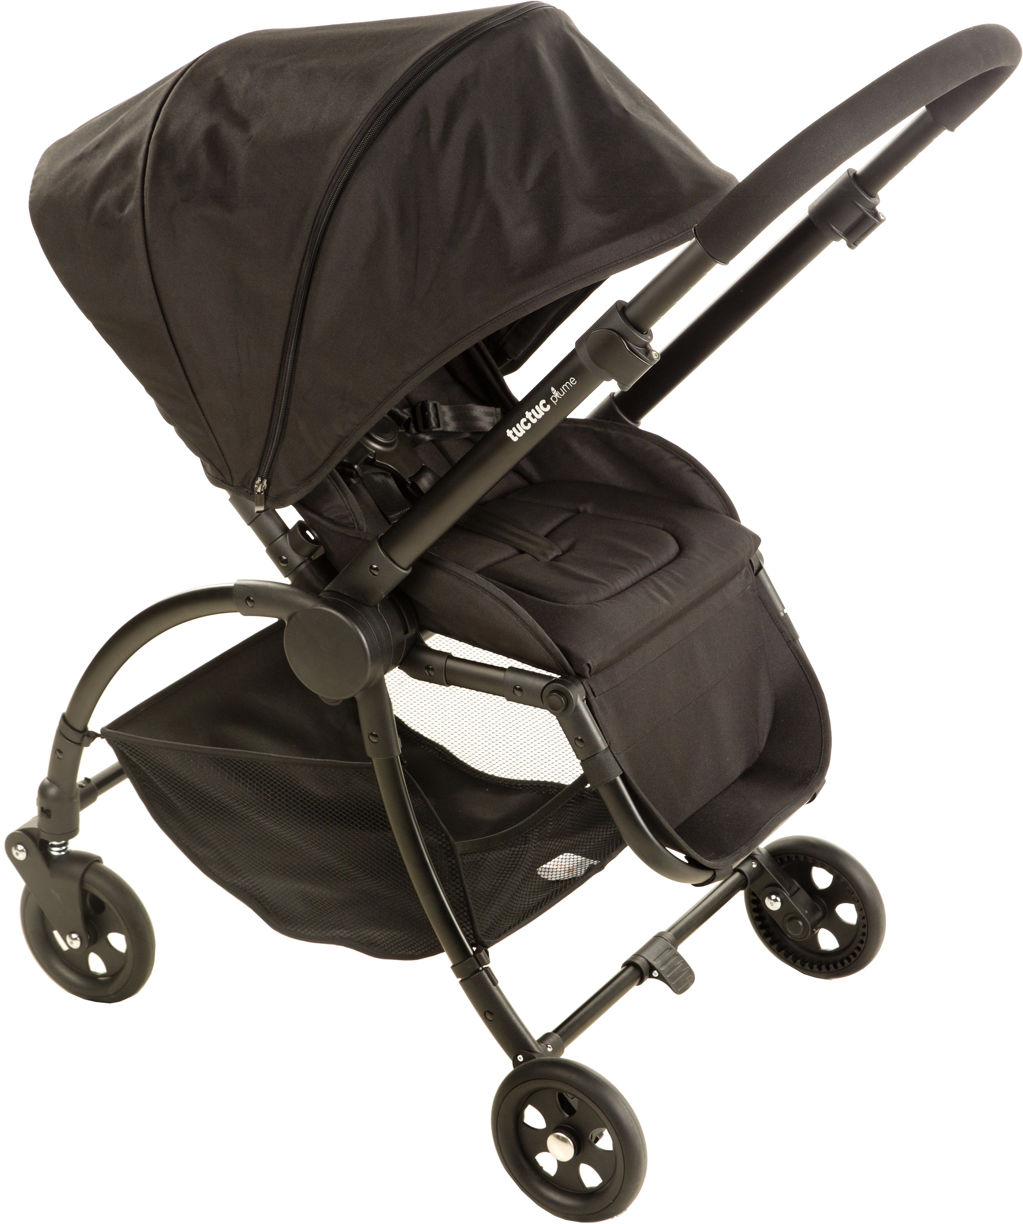 Cochecito Plume  Negro Clasic  TUC TUC - 03d9d-SPP02TTNG2.jpg